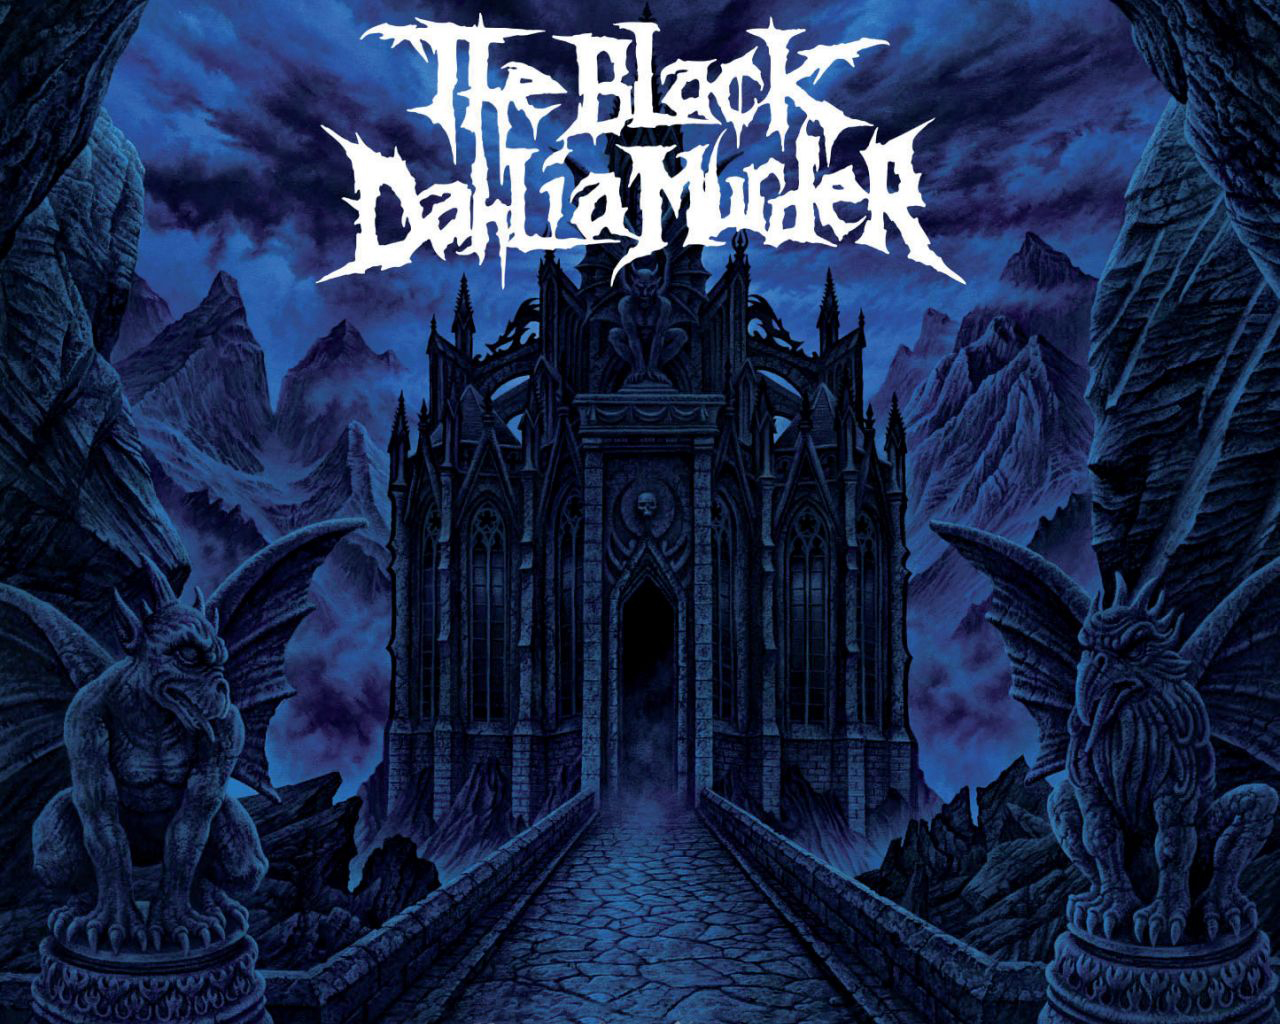 The Black Dahlia Murder Wallpaper